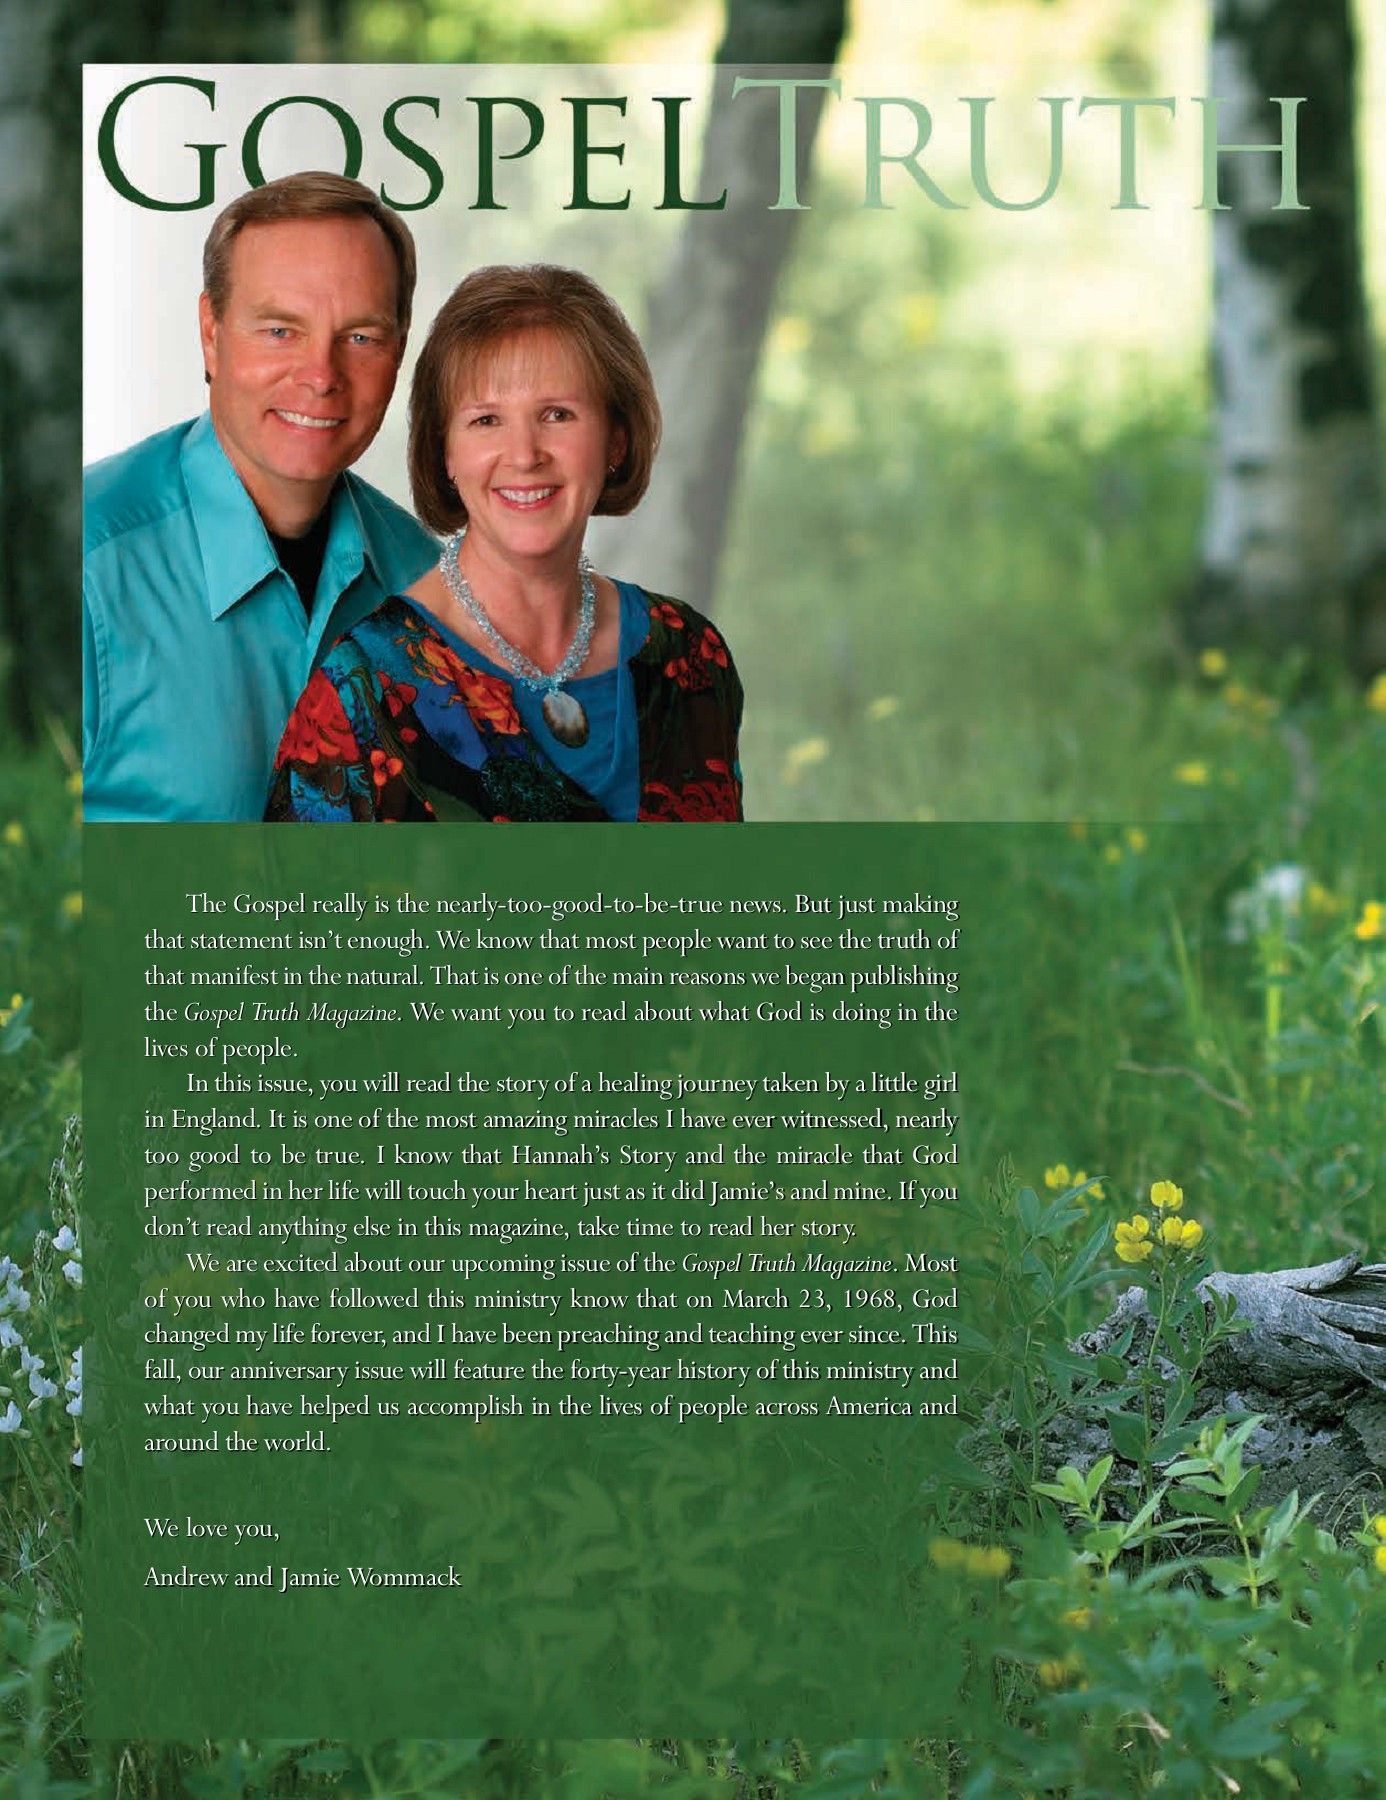 Andrew Wommack Beliefs gospeltruth - andrew wommack ministries international pages